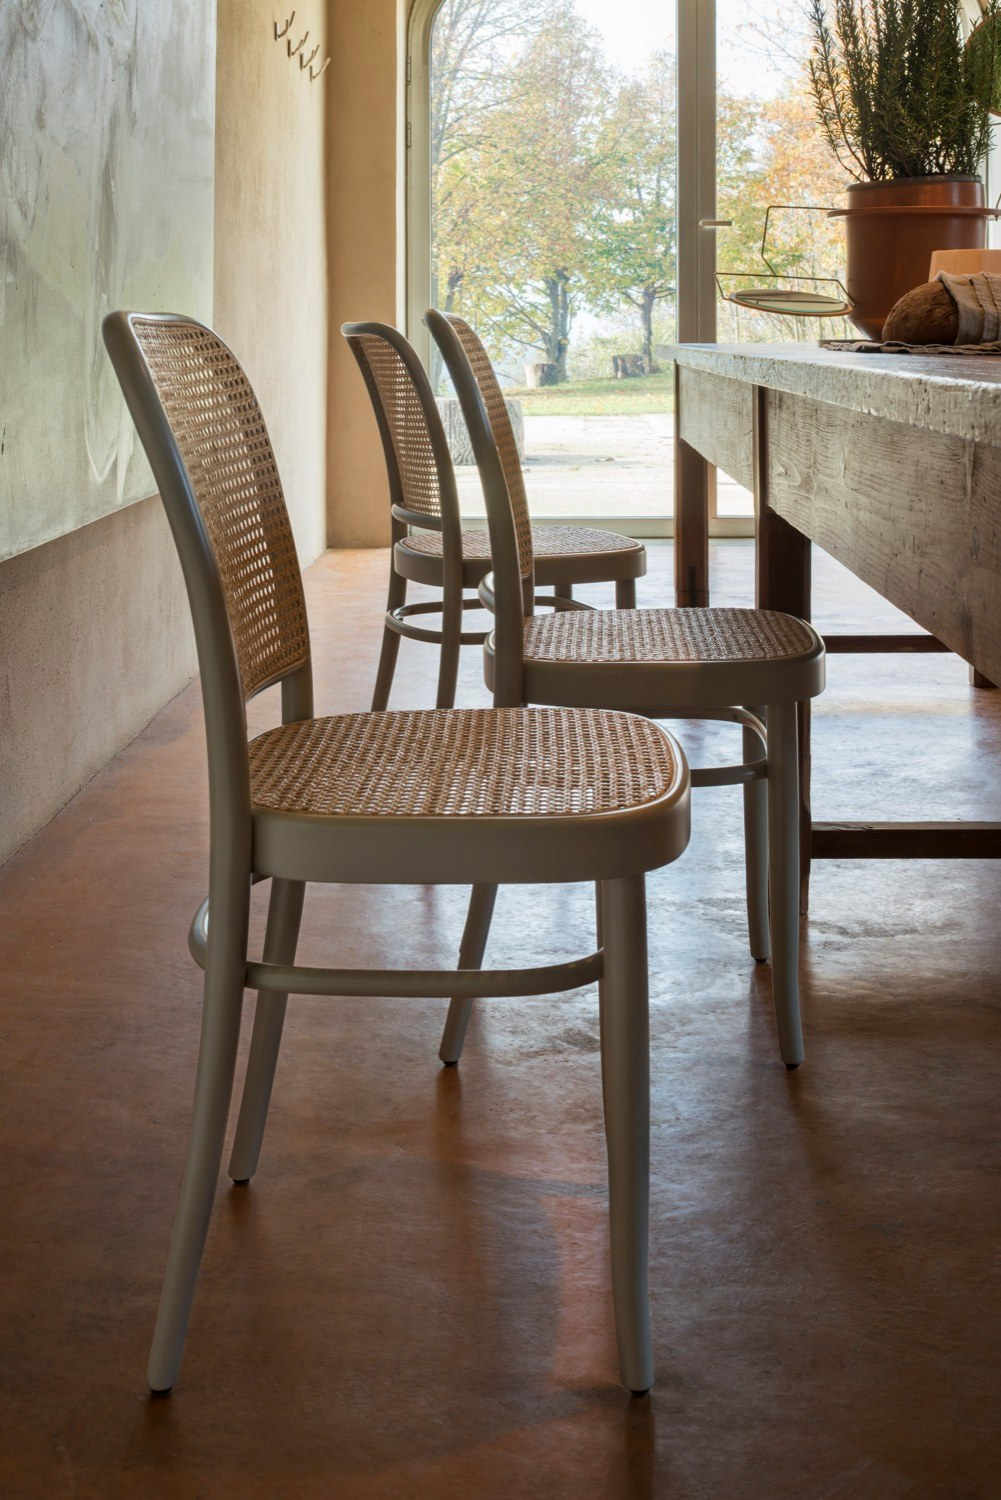 N.811 Chair  - Steam bentbeech chair designed by Josef Hoffmann in 1930. A timeless and modern design gives the chair N. 811 an outstanding comfort and lightness. Version: woven cane seat and backrest. | Matter of Stuff